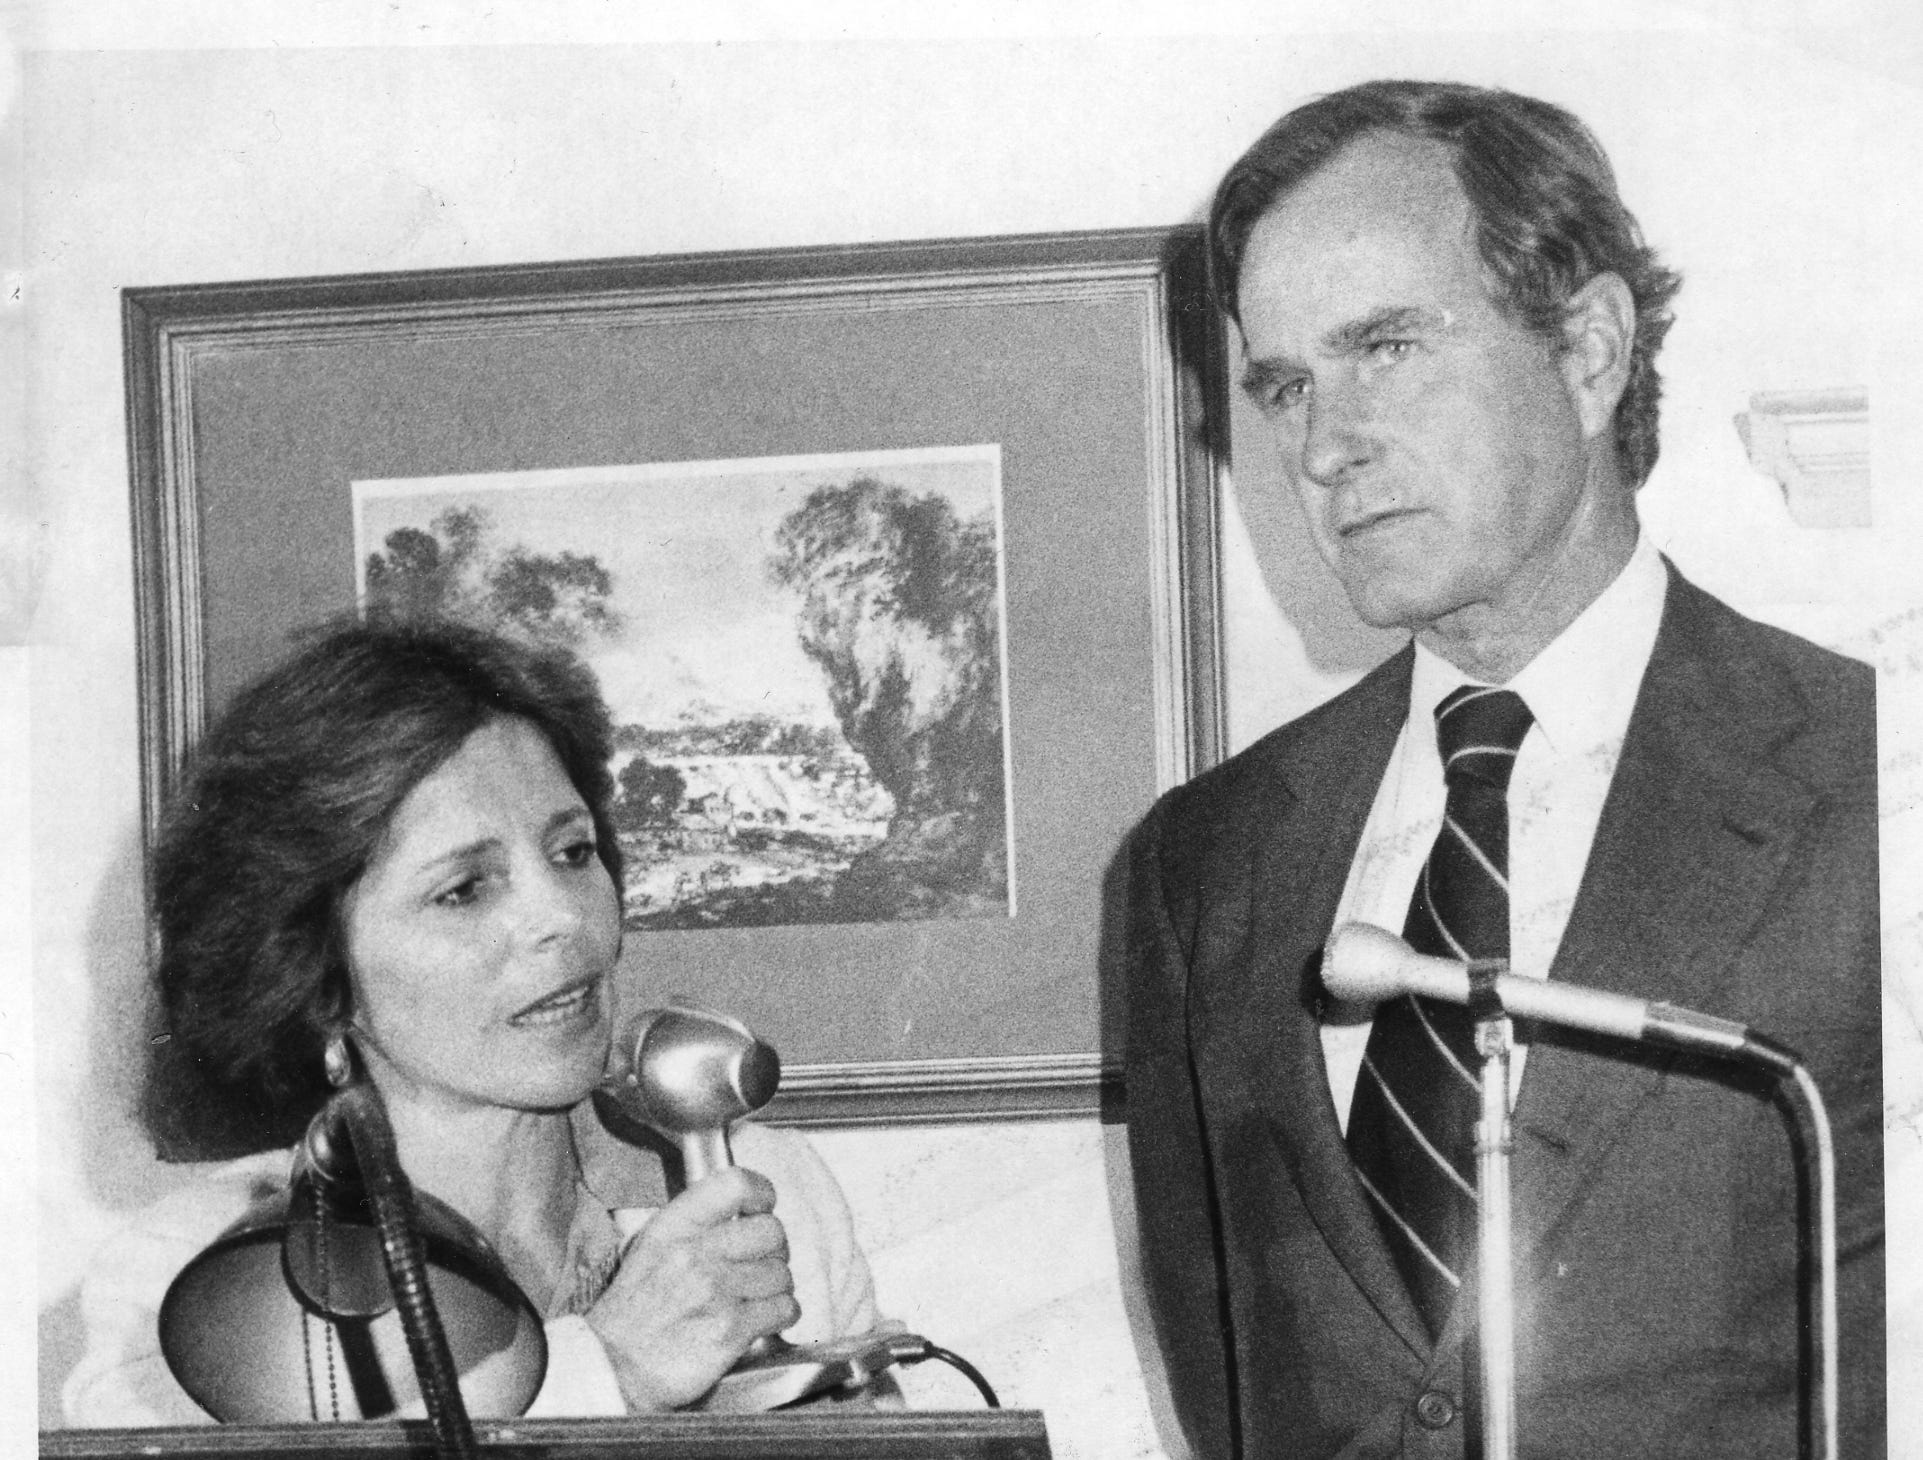 Margaret S. Roukema, candidate for Congress in the Seventh District, introducing George Bush, former U.N. Ambassador and GOP national chairman to guests at a businessmanÕs luncheon recently at the Hackensack Golf Club in Oradell. OCT 5 1978